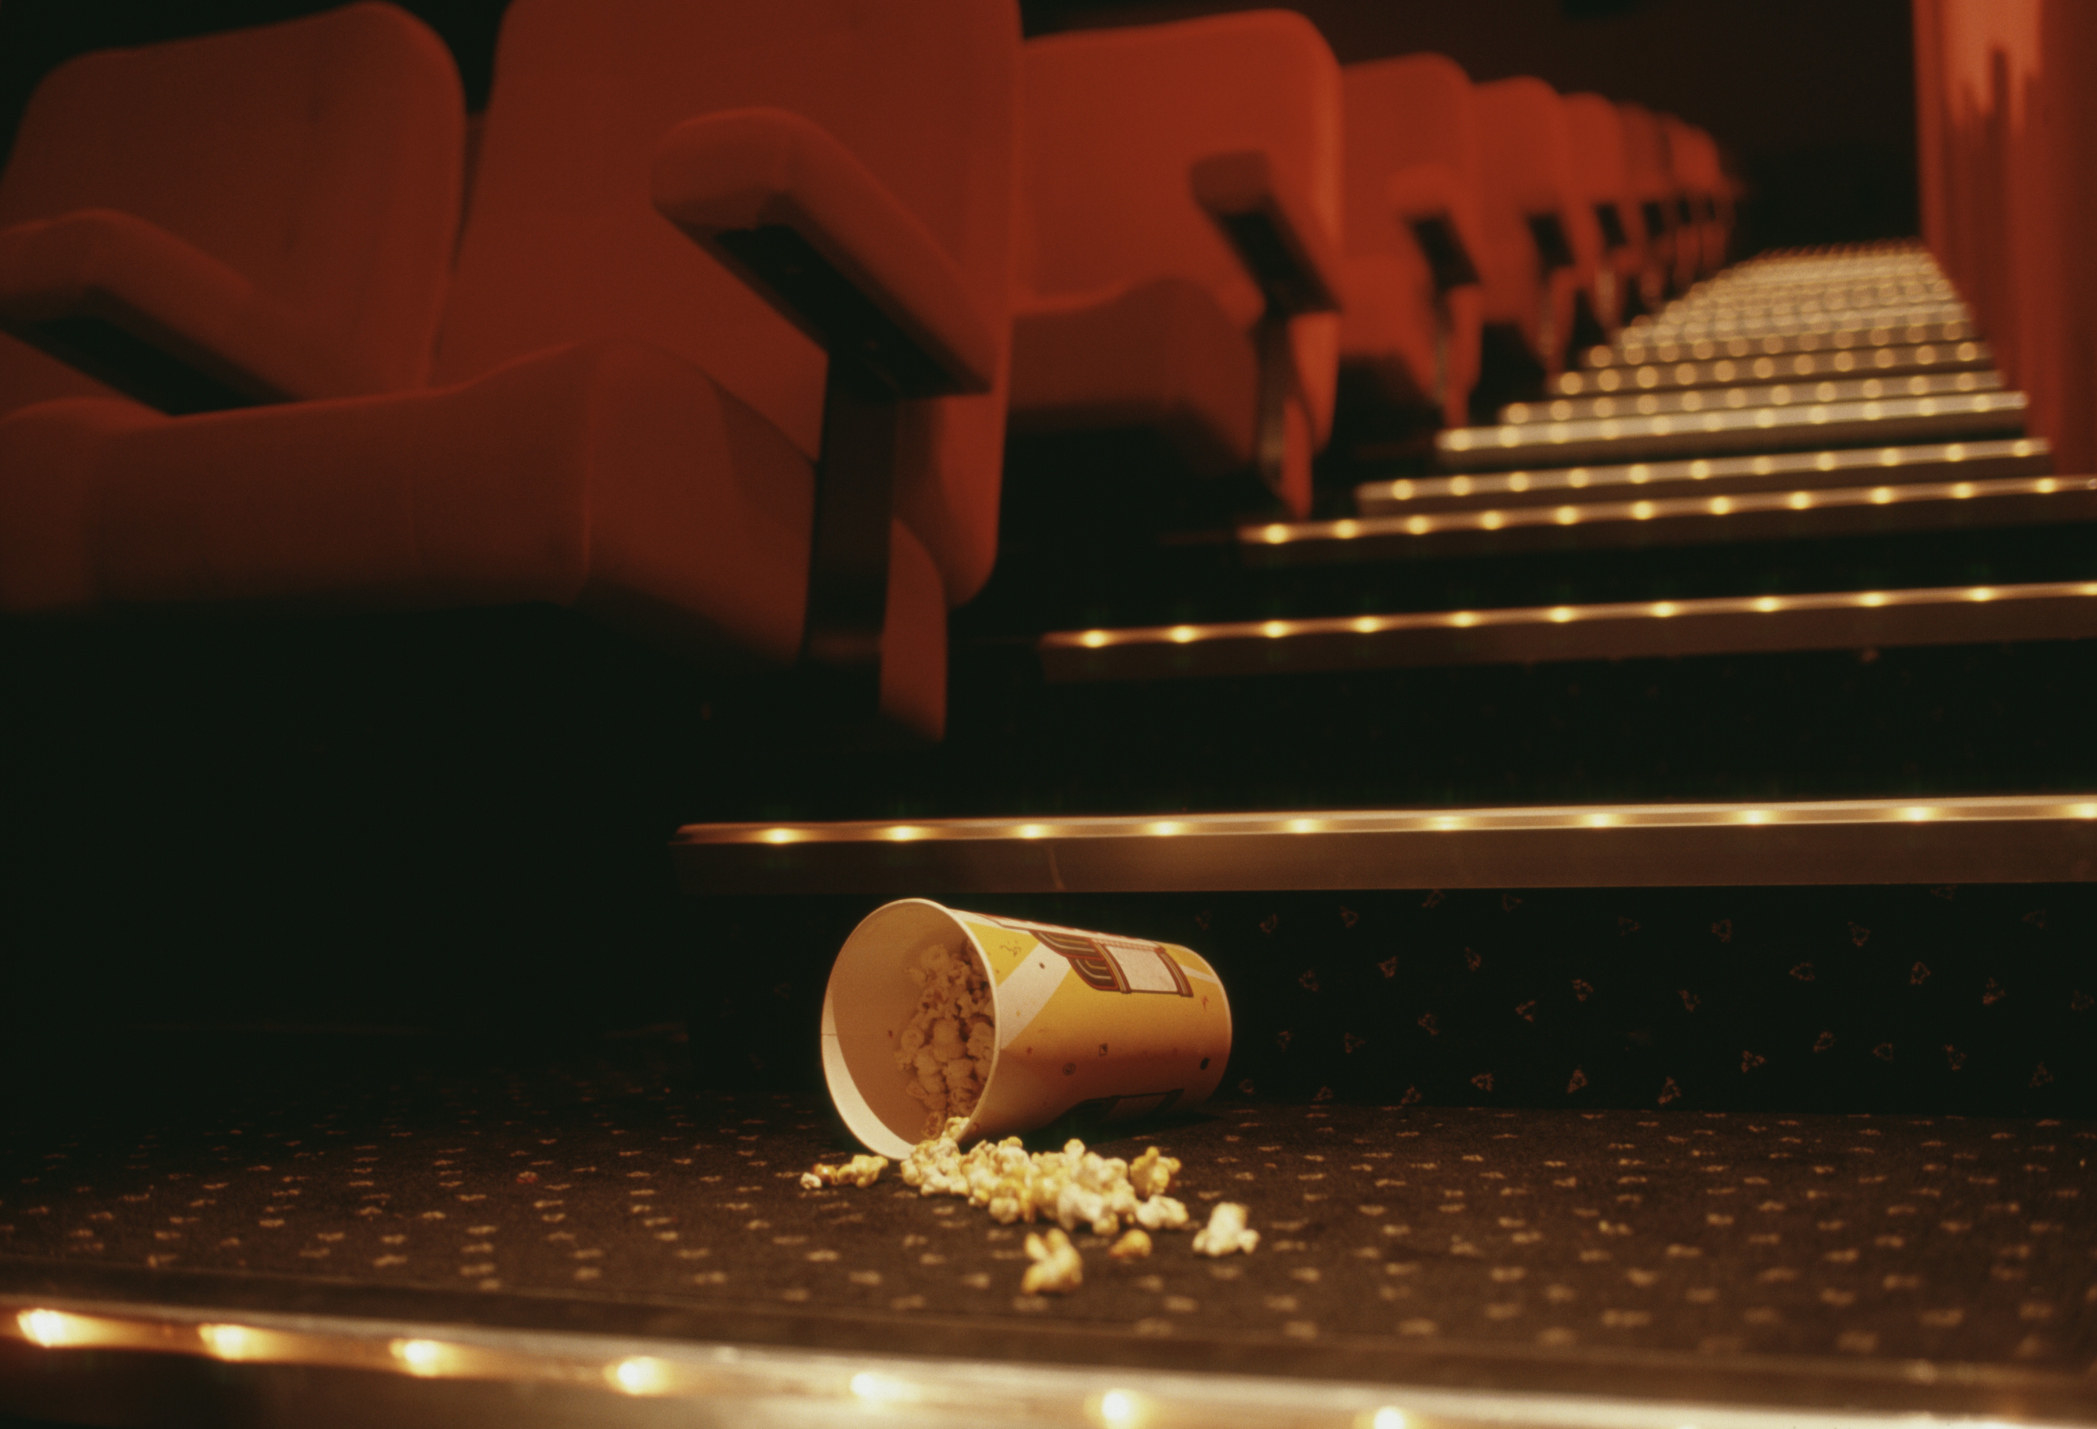 Spilled popcorn at the base of the lit stairs of a movie theater, looking up the aisle with seats on either side